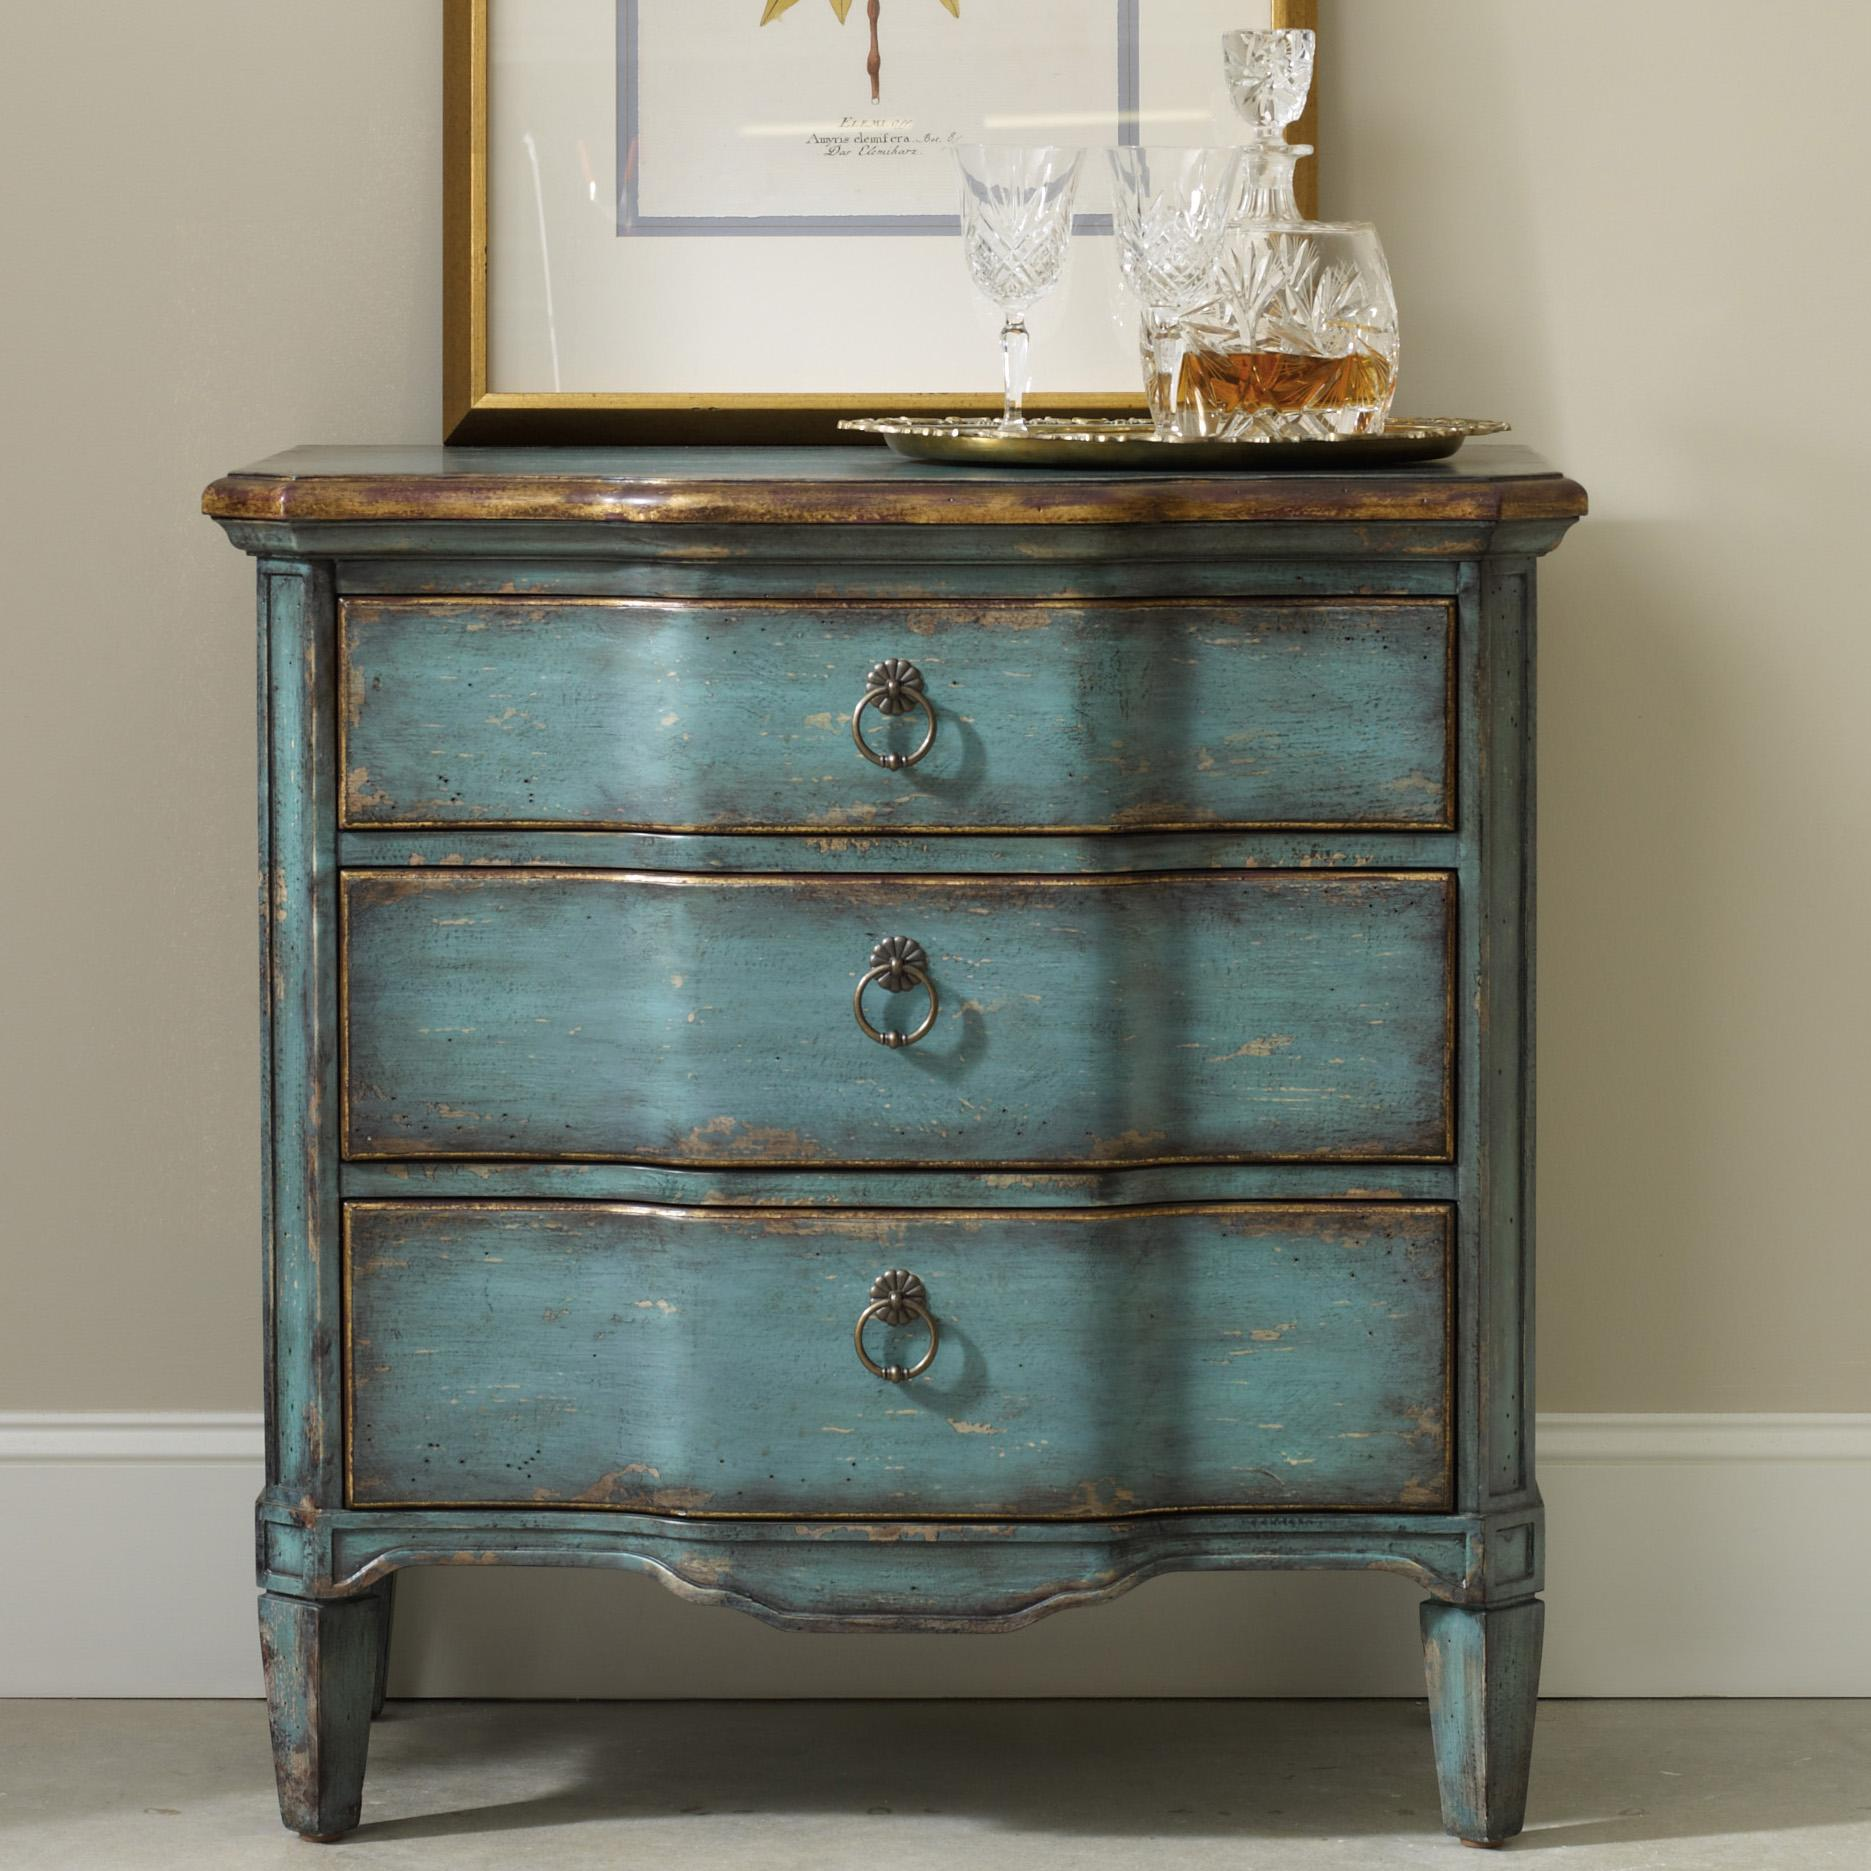 Hamilton Home Living Room Accents Three Drawer Turquoise Chest With Shaped Front Rotmans